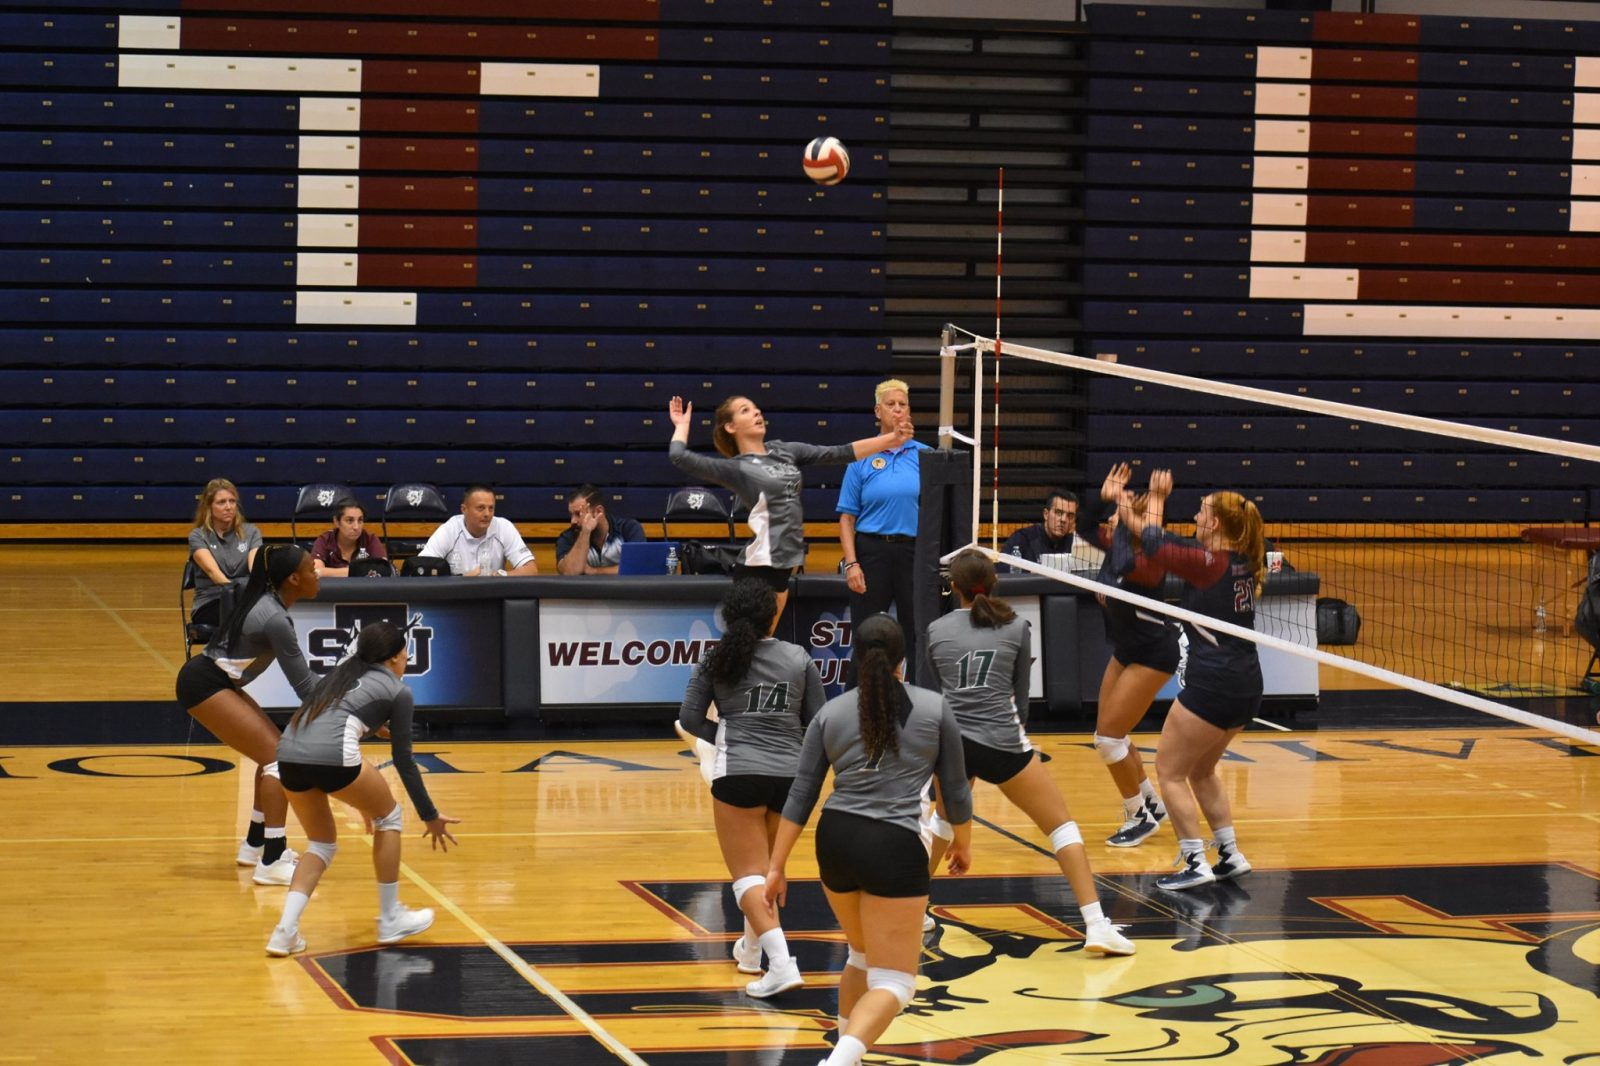 fnu volleyball player attacking the ball during the game against st. Thomas